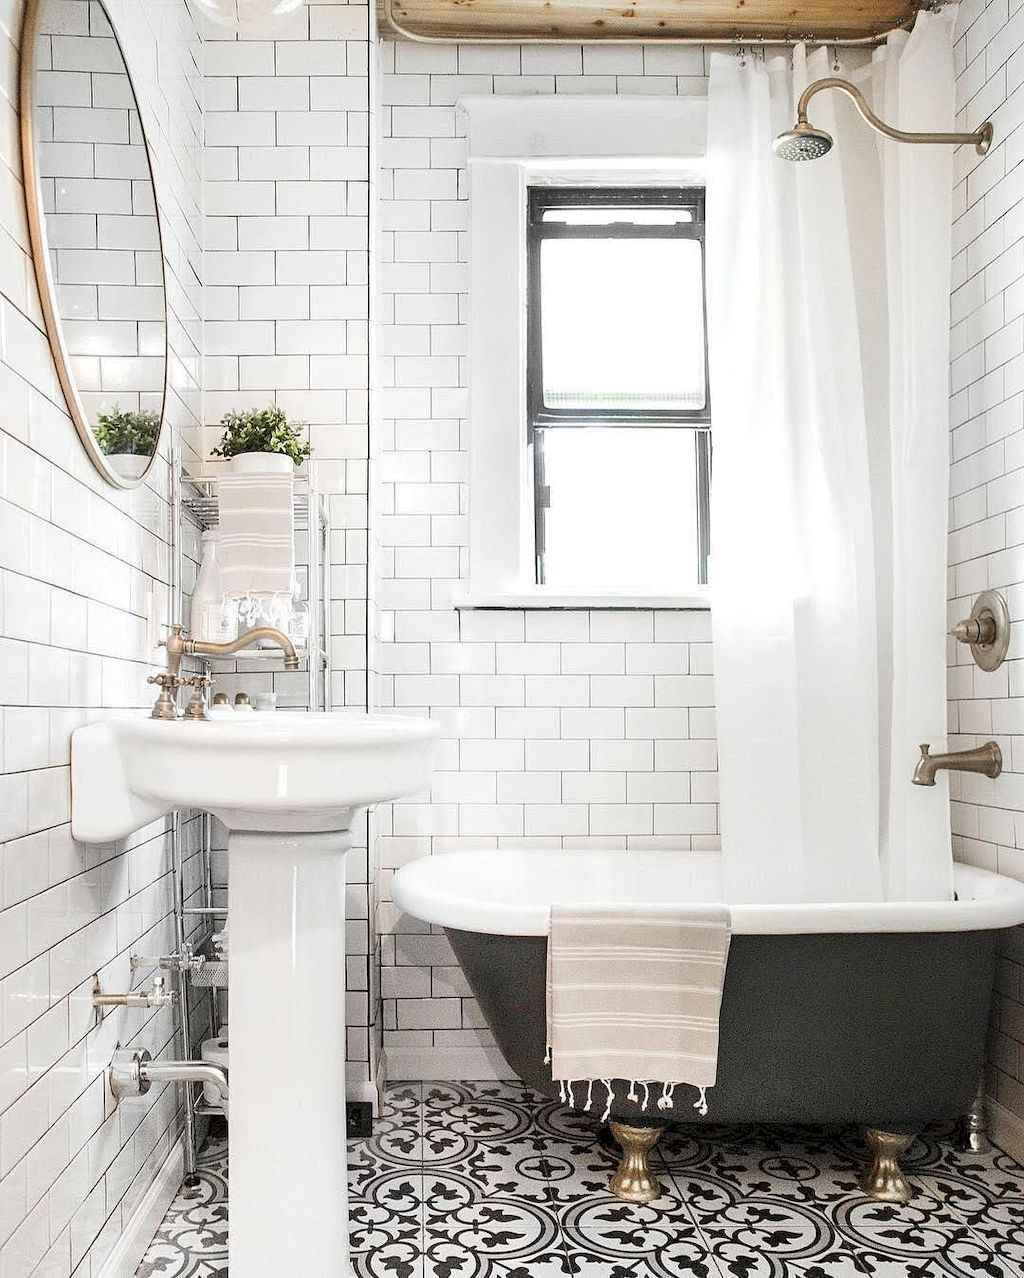 85 Beautiful Small Bathroom Decor Ideas on A Budget